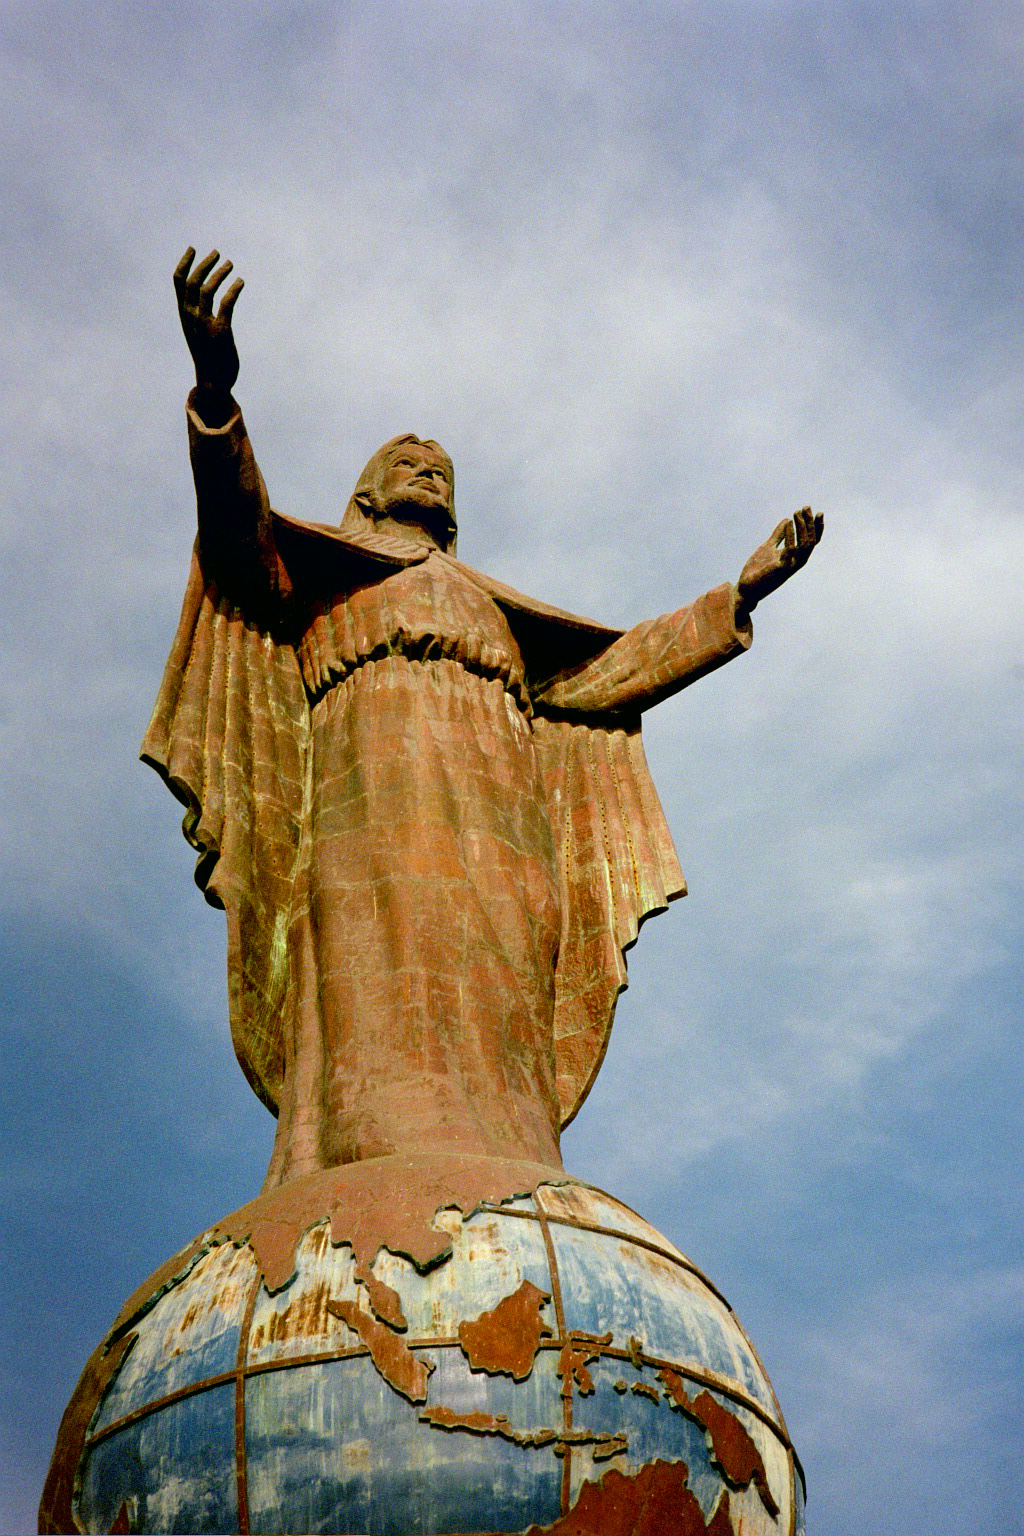 The Jesus Statue in Dili (Catherine Scott/Progressio)